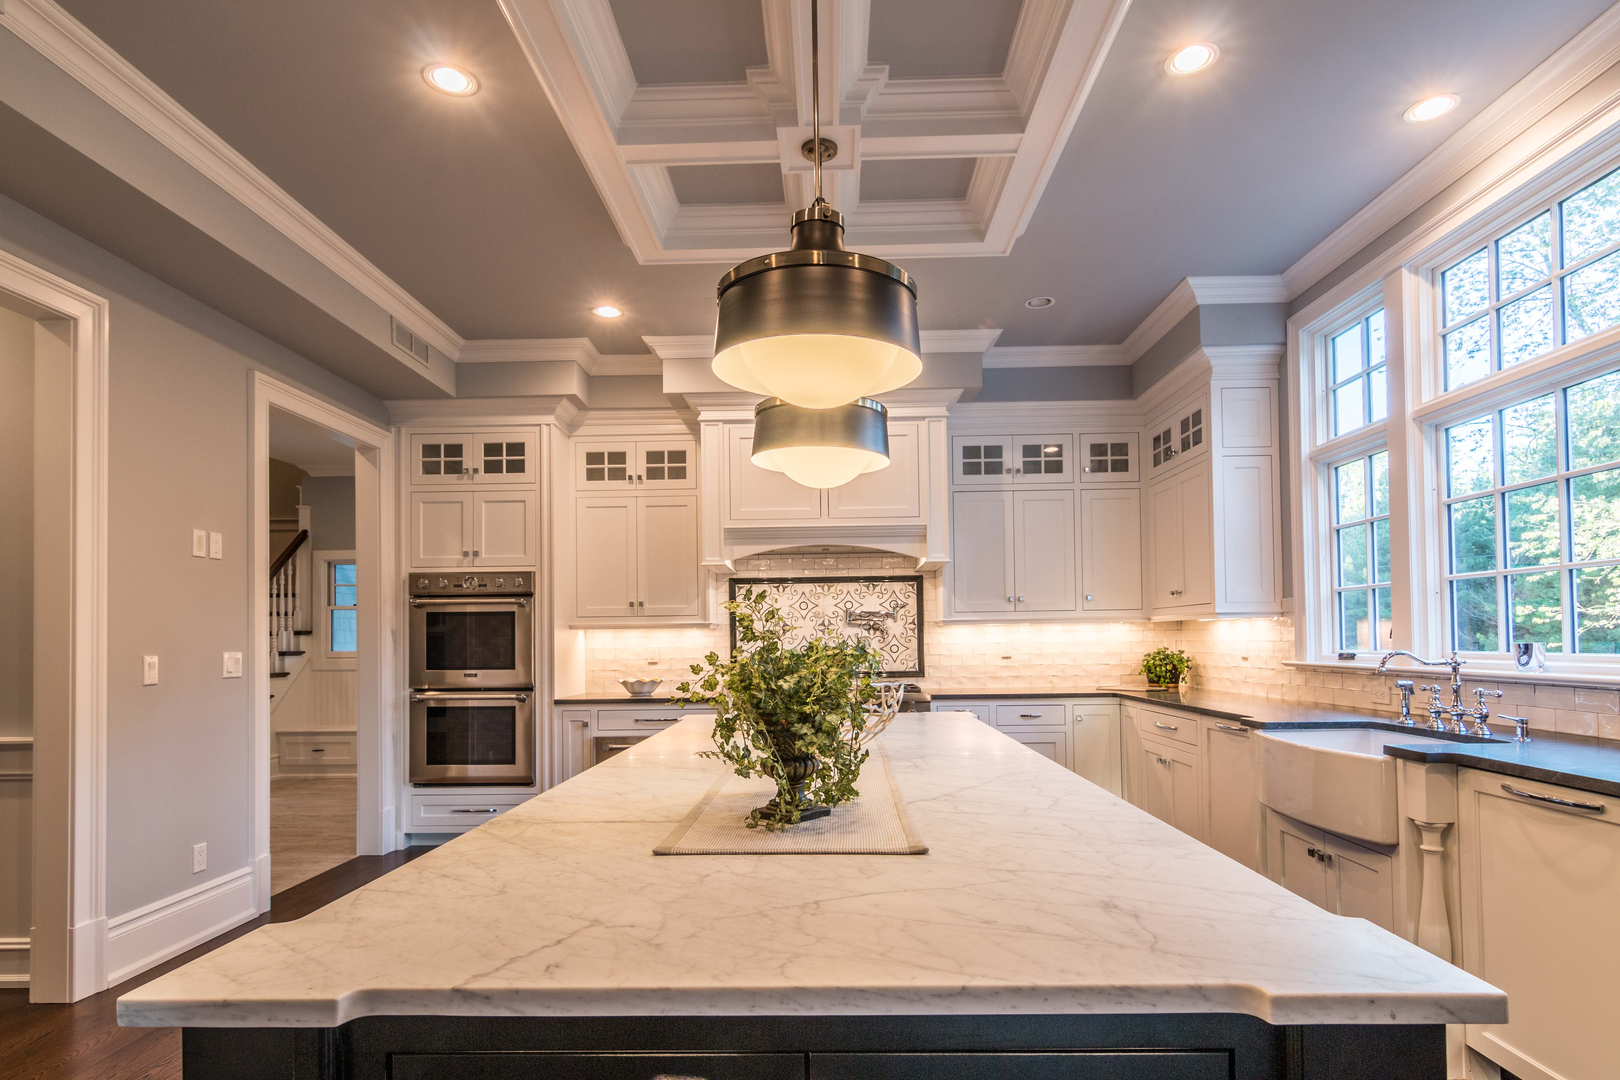 Natural Stone Countertops with Beautiful Marble Mural Design on Backsplash.